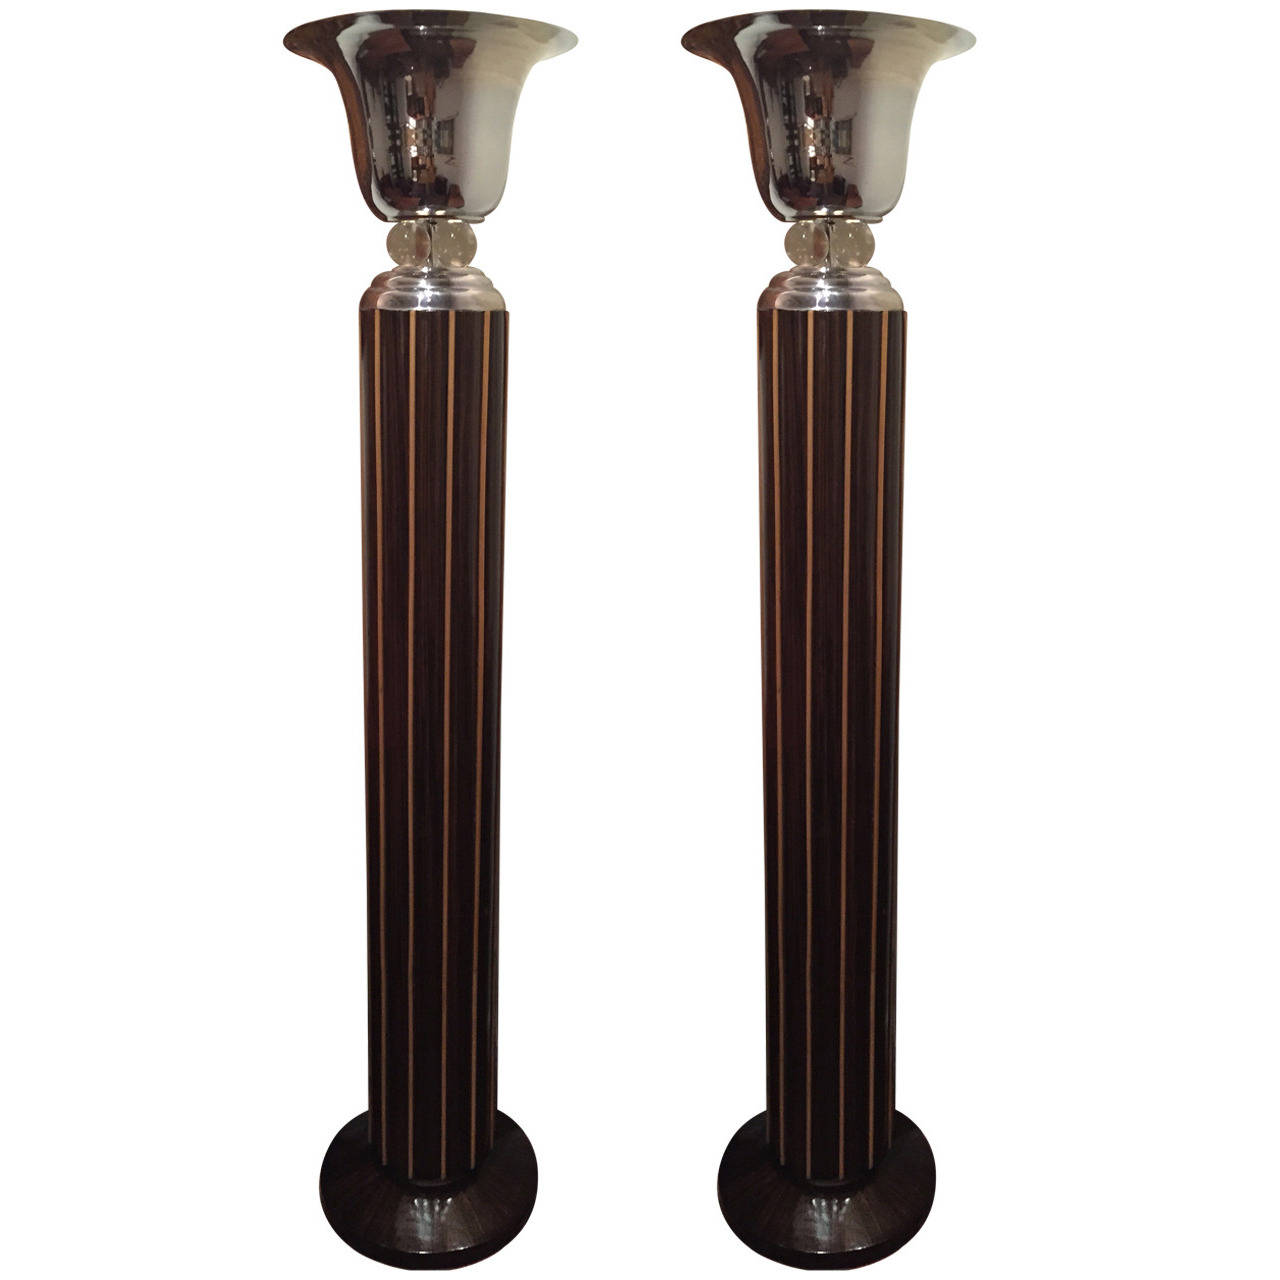 vintage torchiere table lamp antique wrought iron floor lamps uplight accent full size game and chairs inexpensive home decor bathroom chest drawers dining kijiji garden furniture